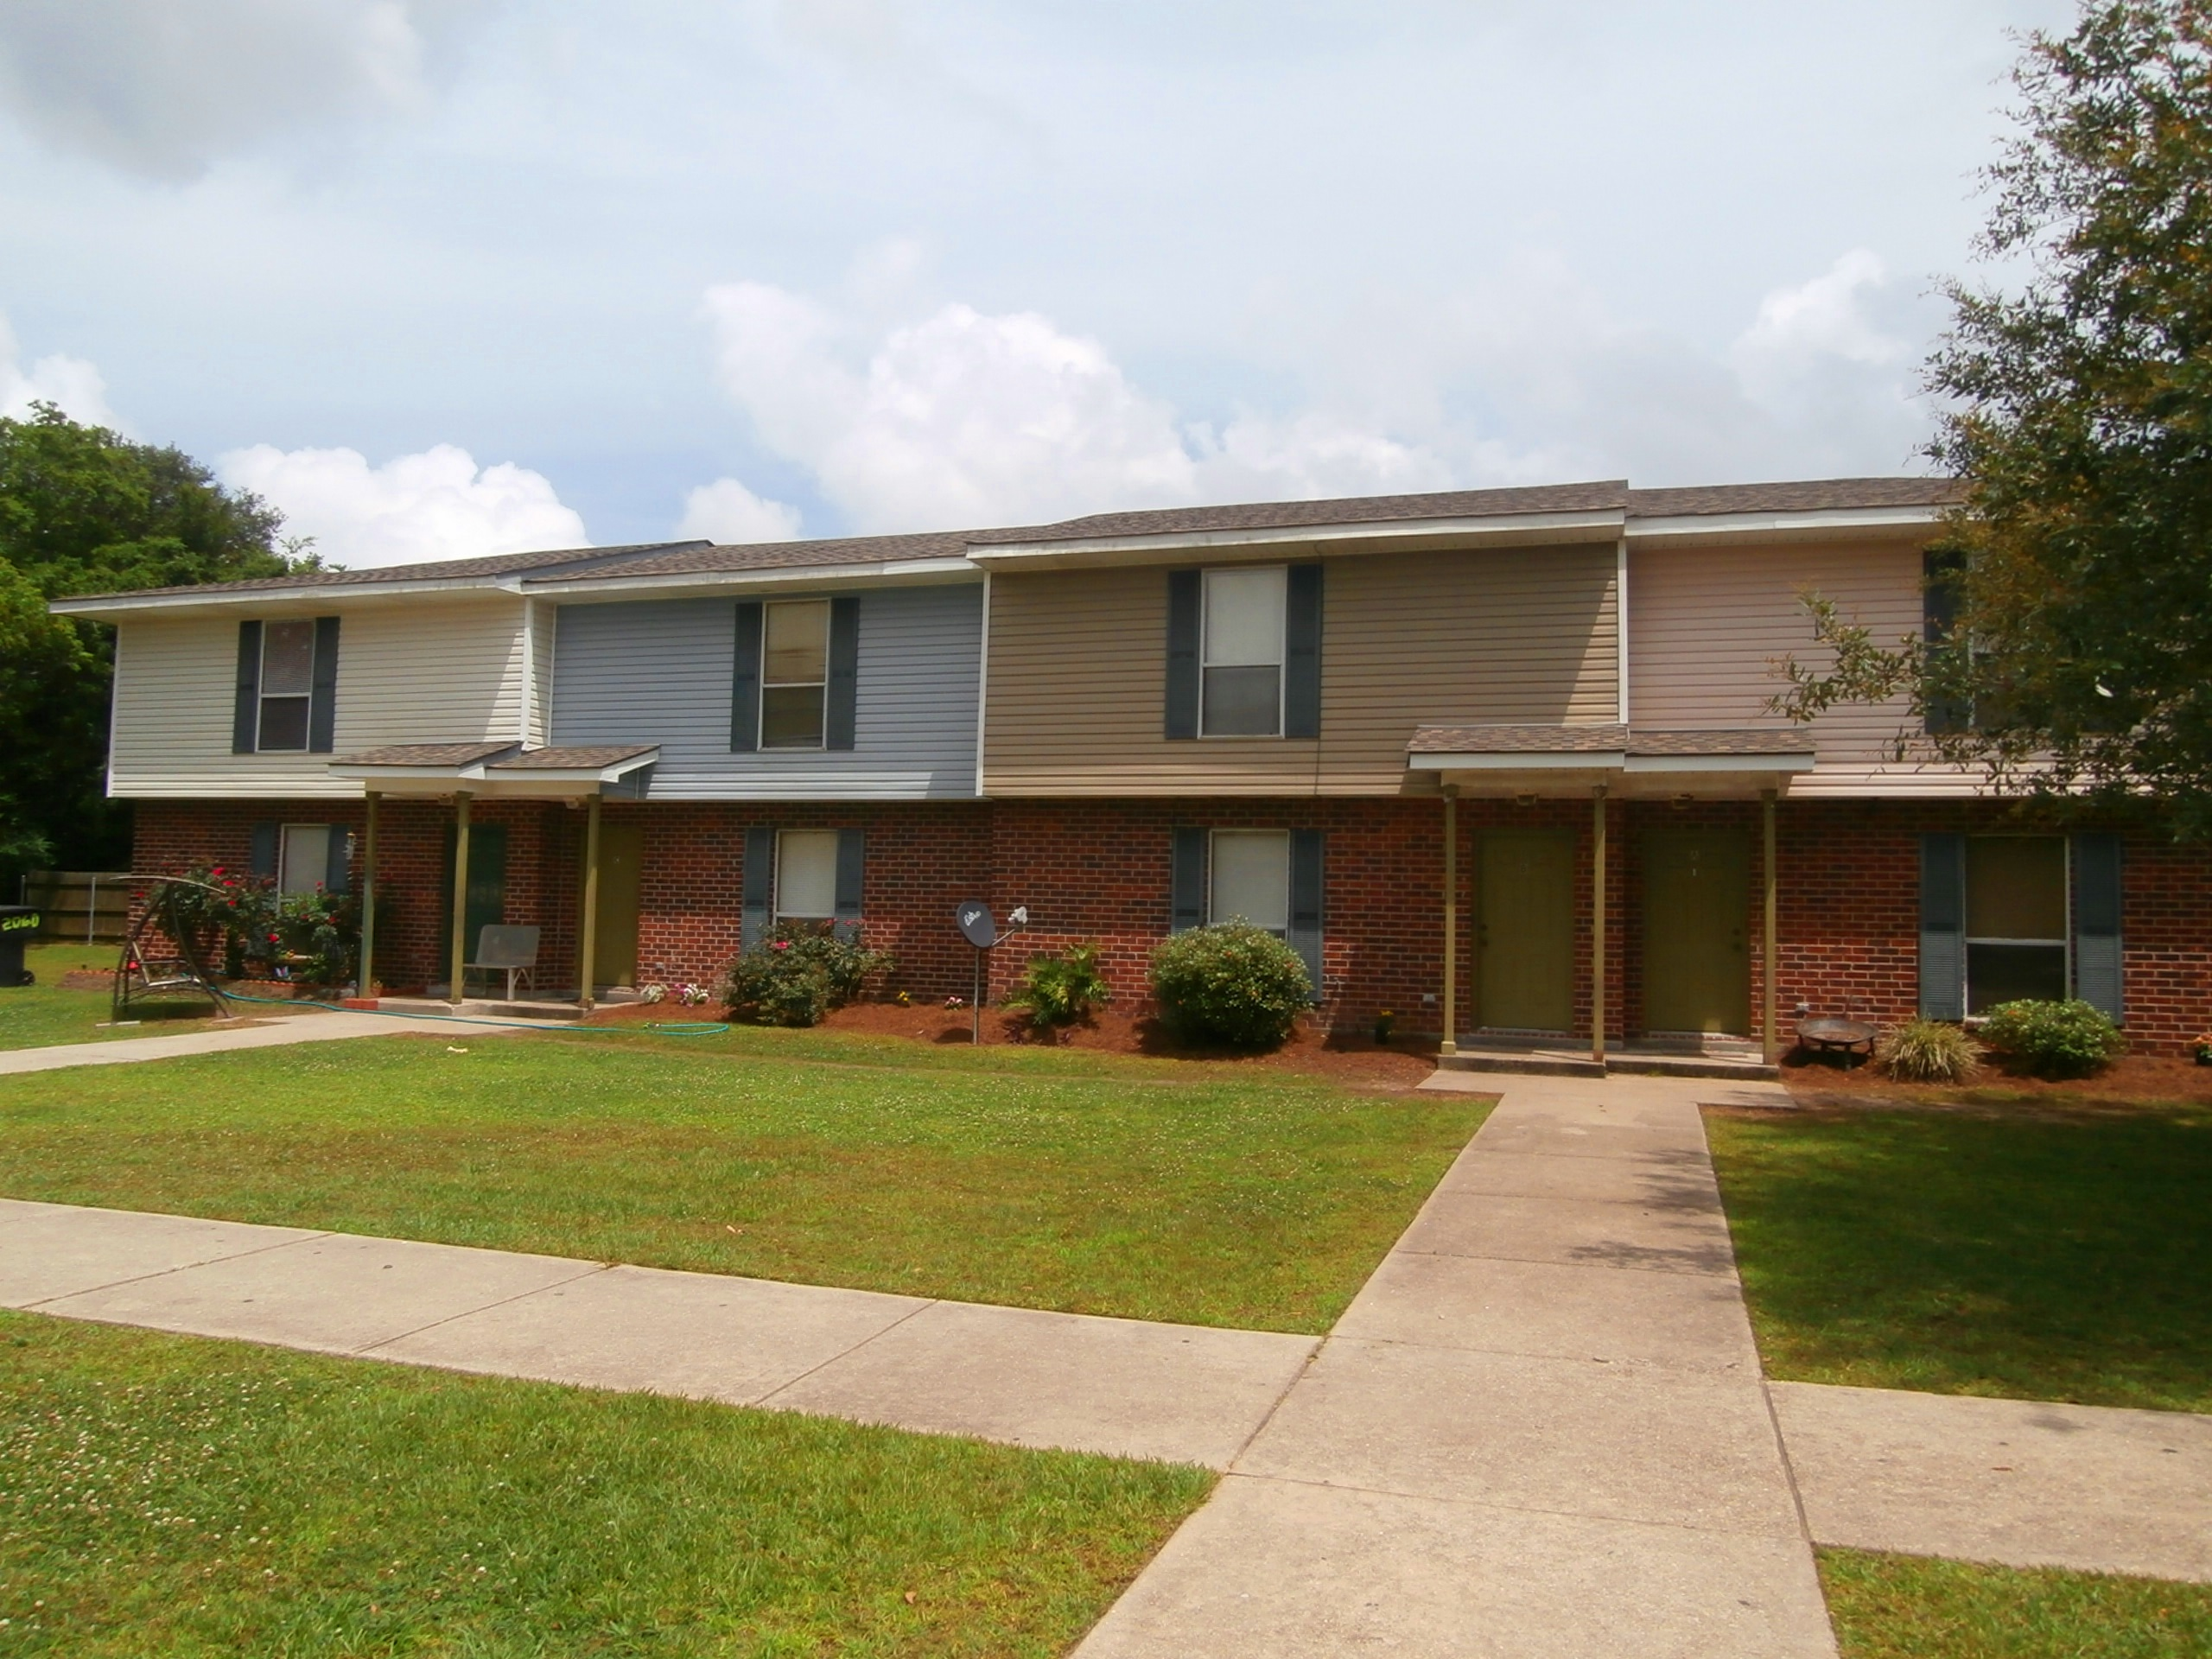 206 S. CONCORD ROAD, Belle Chasse, Louisiana 70037